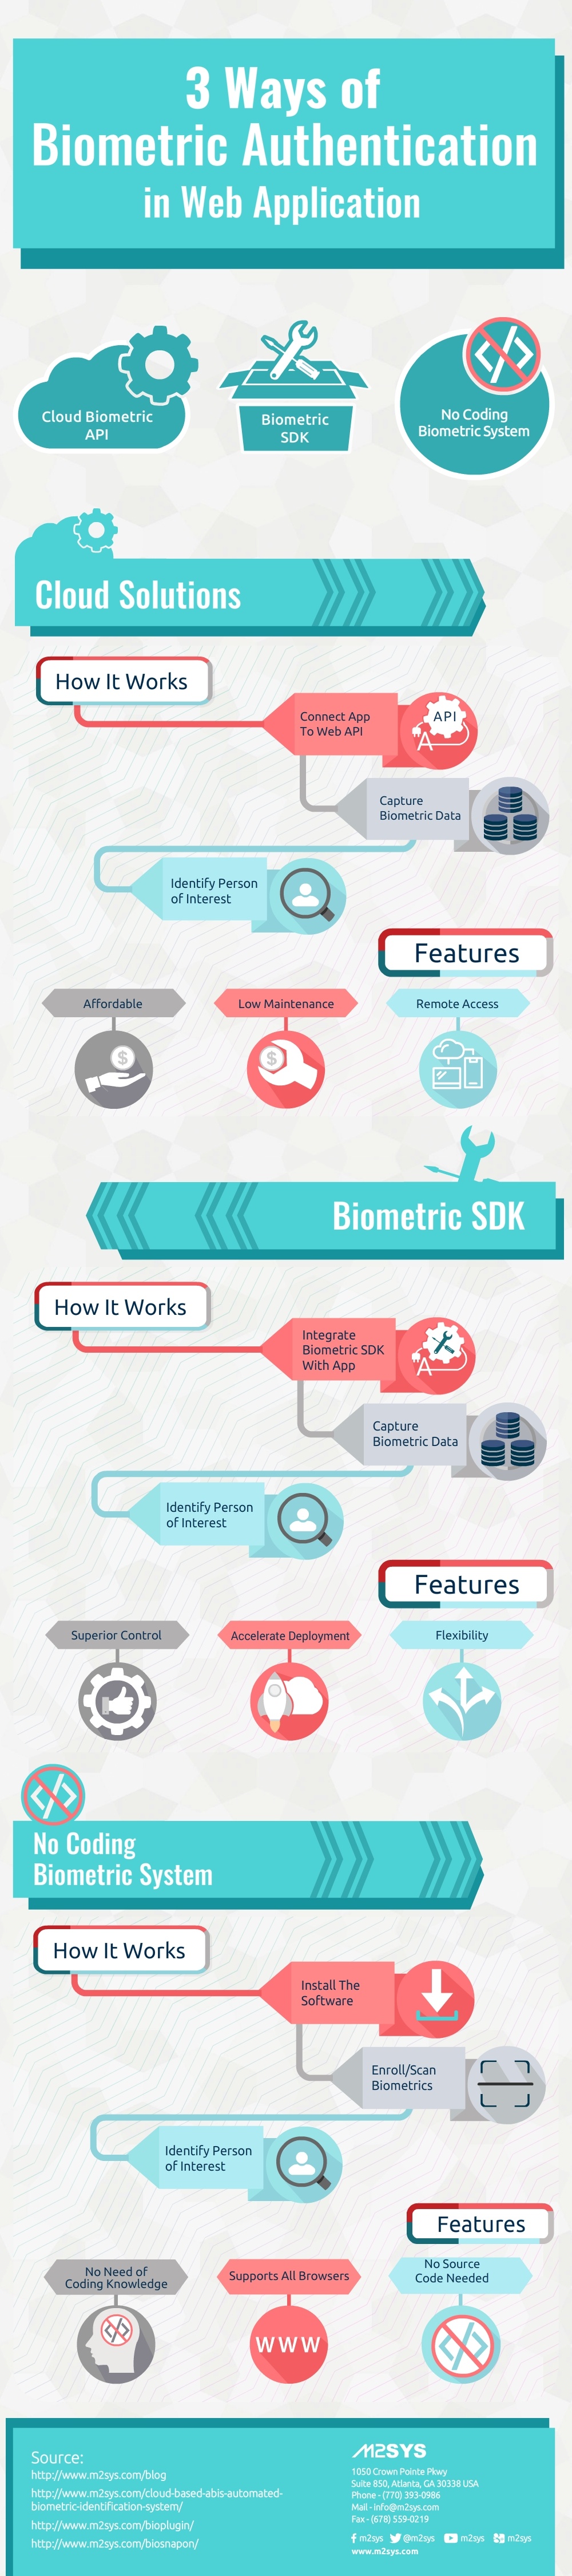 3-ways-of-biometric-authentication-in-web-application